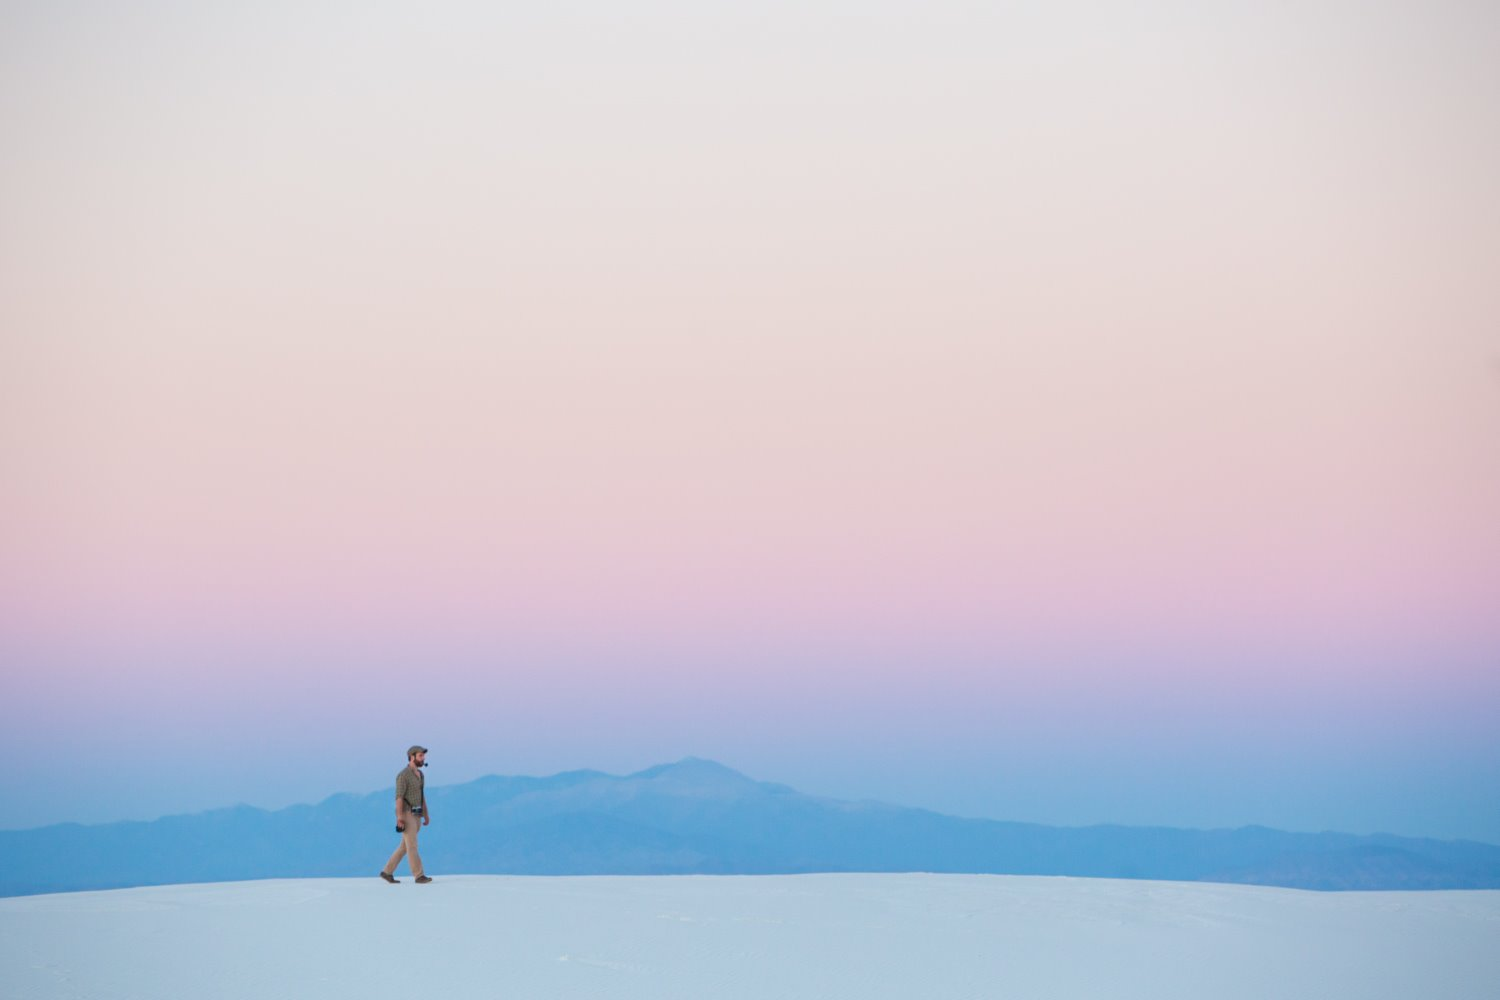 man walking in minimalistic landscape photography composition